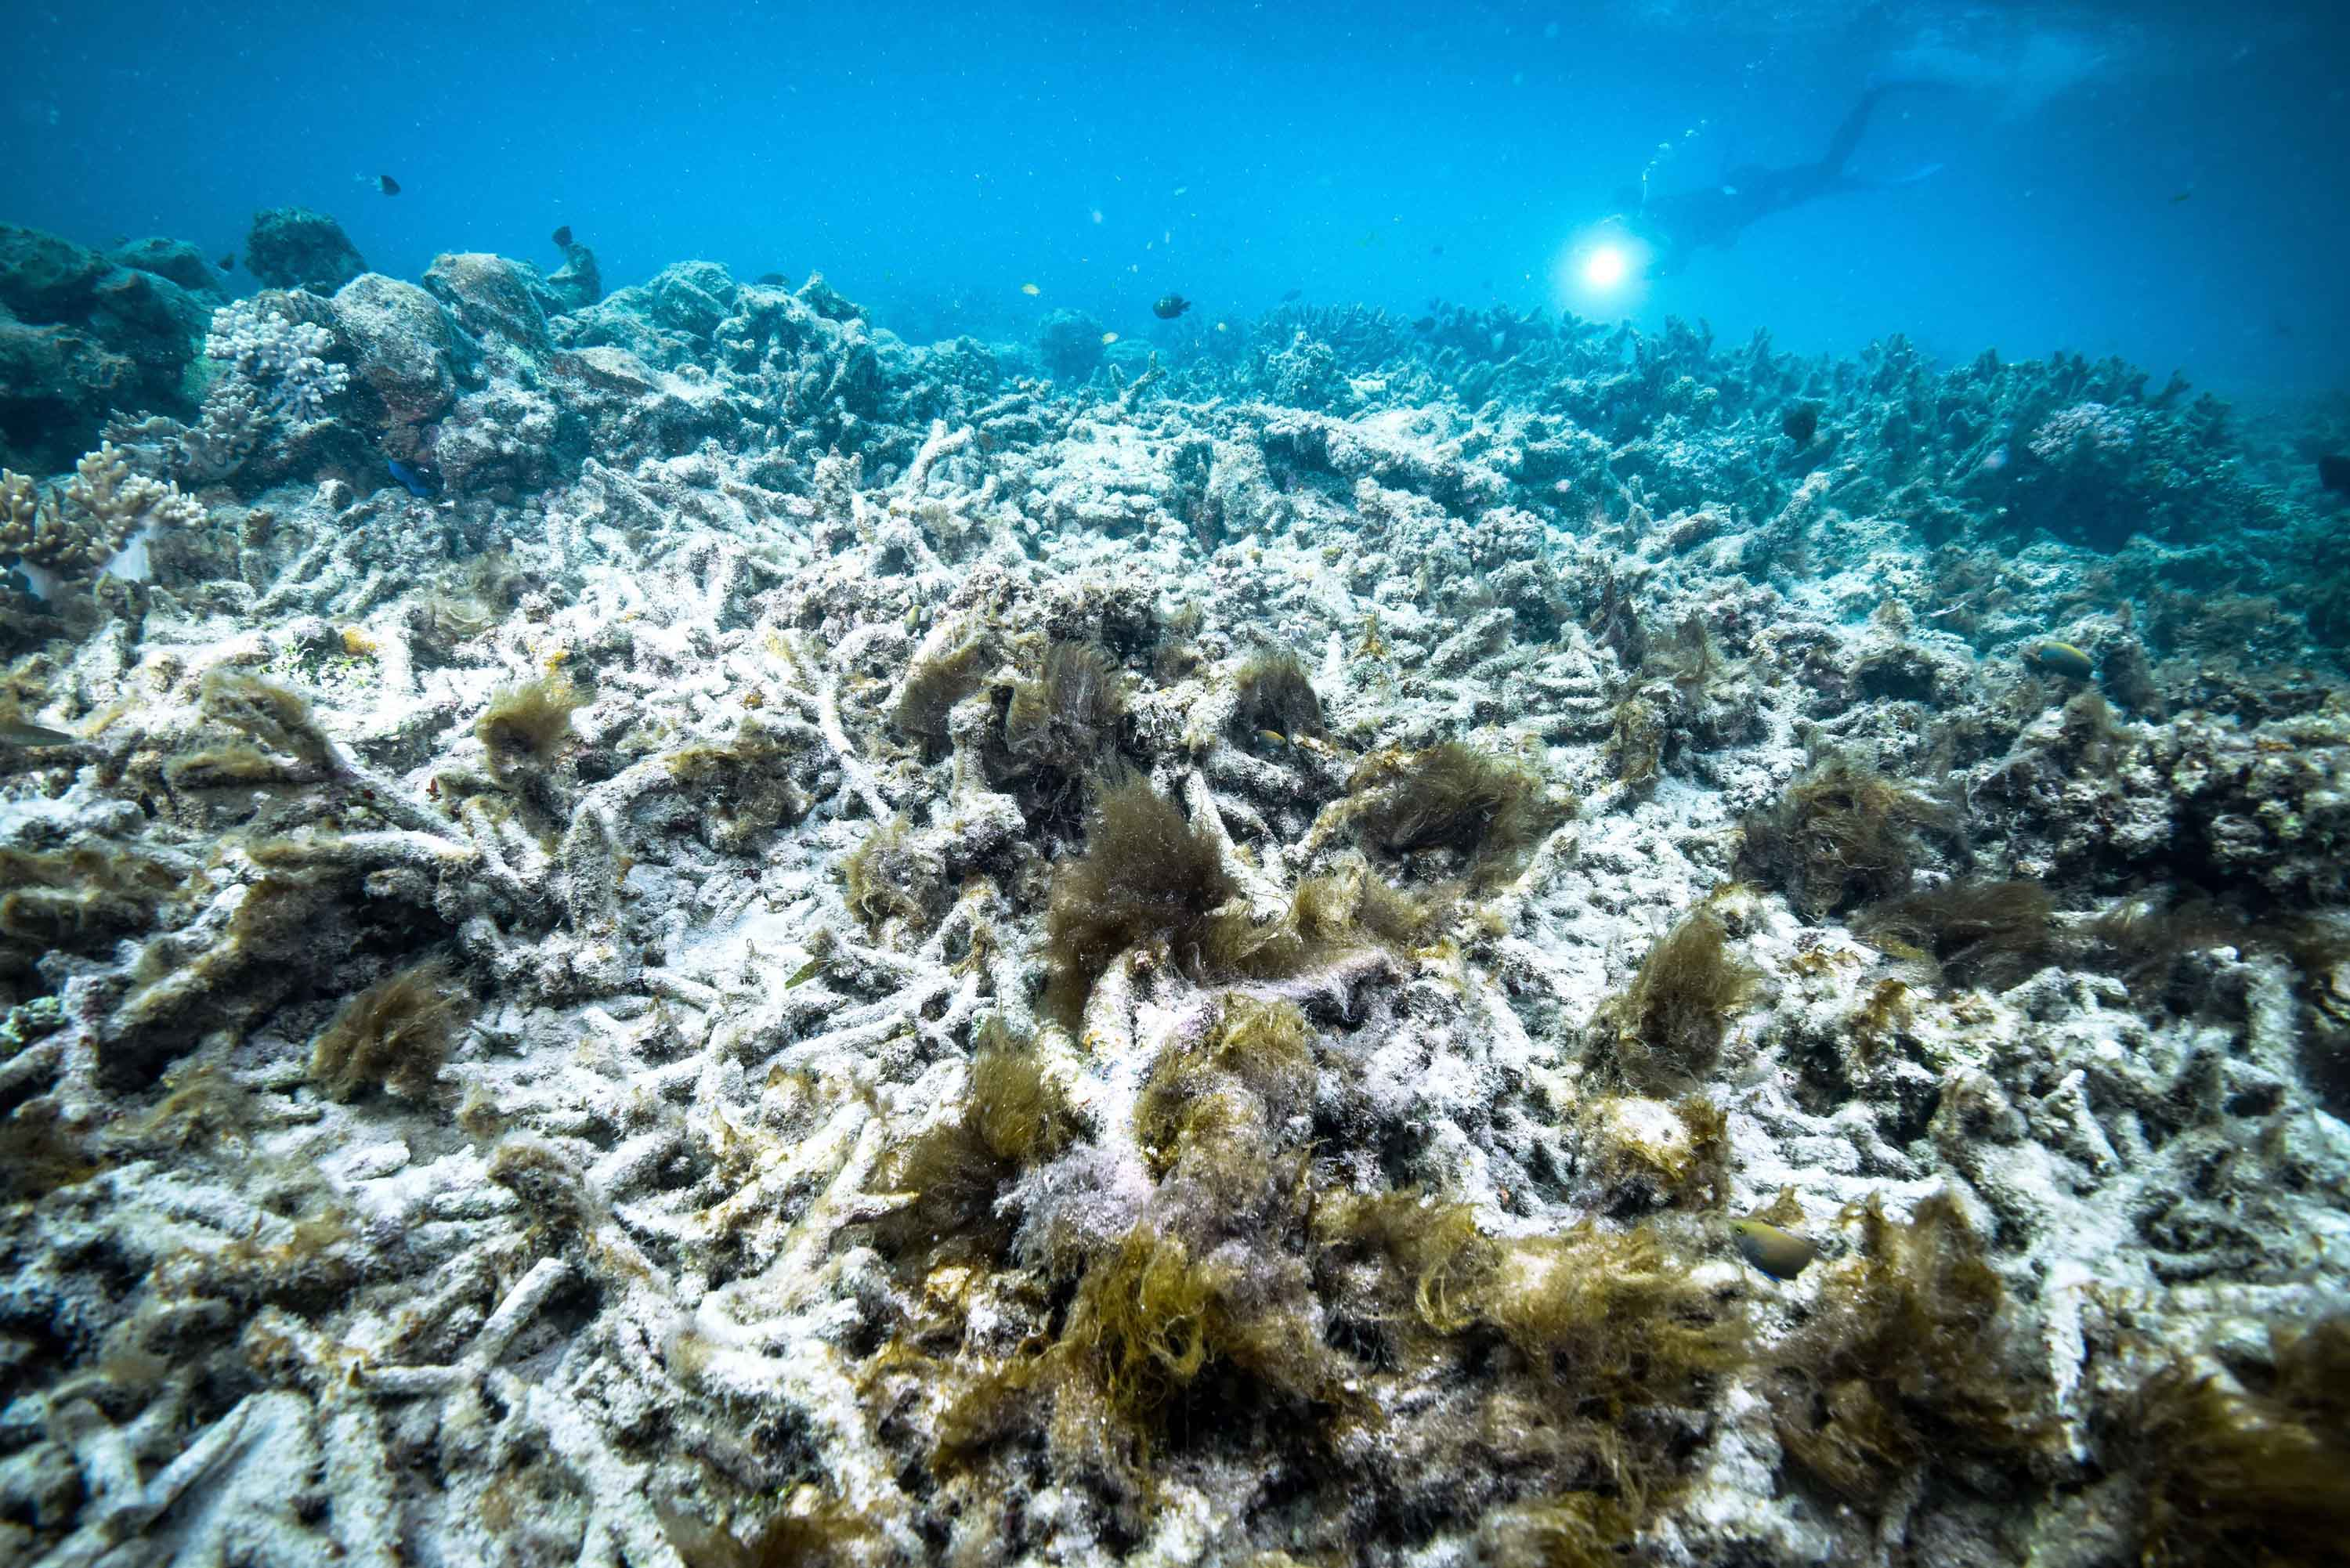 The Great Barrier Reef likely just experienced its most widespread bleaching event on record